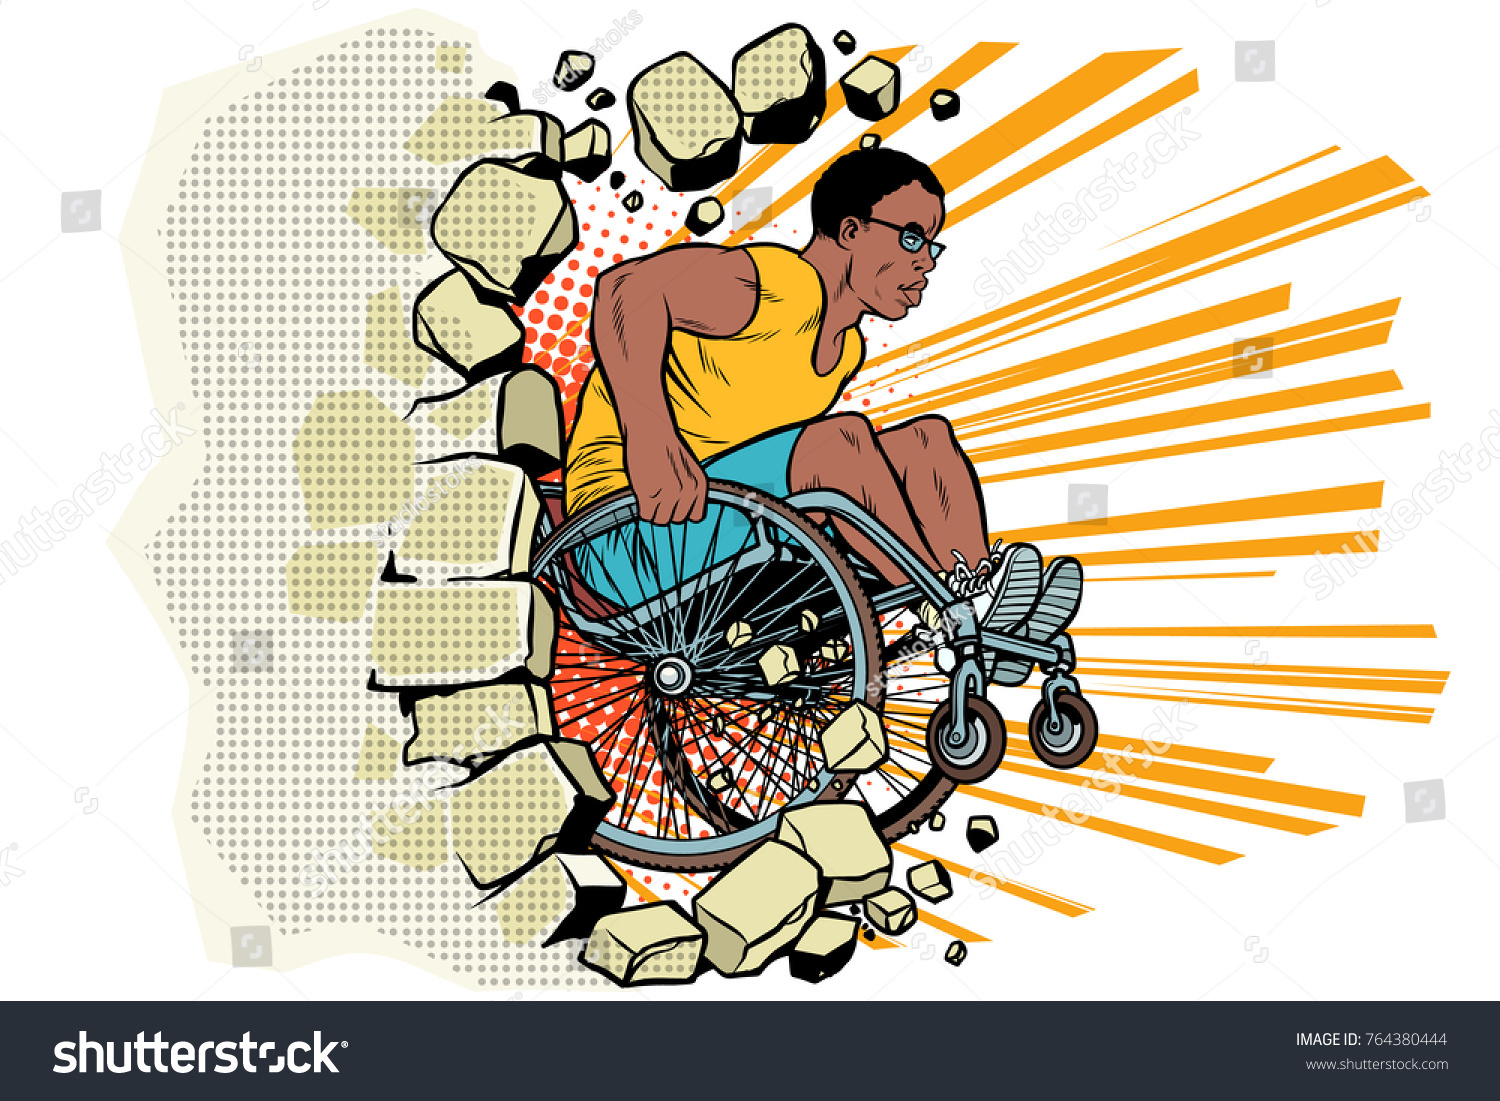 Black Male Athlete Wheelchair Punches Wall Stock Illustration ...